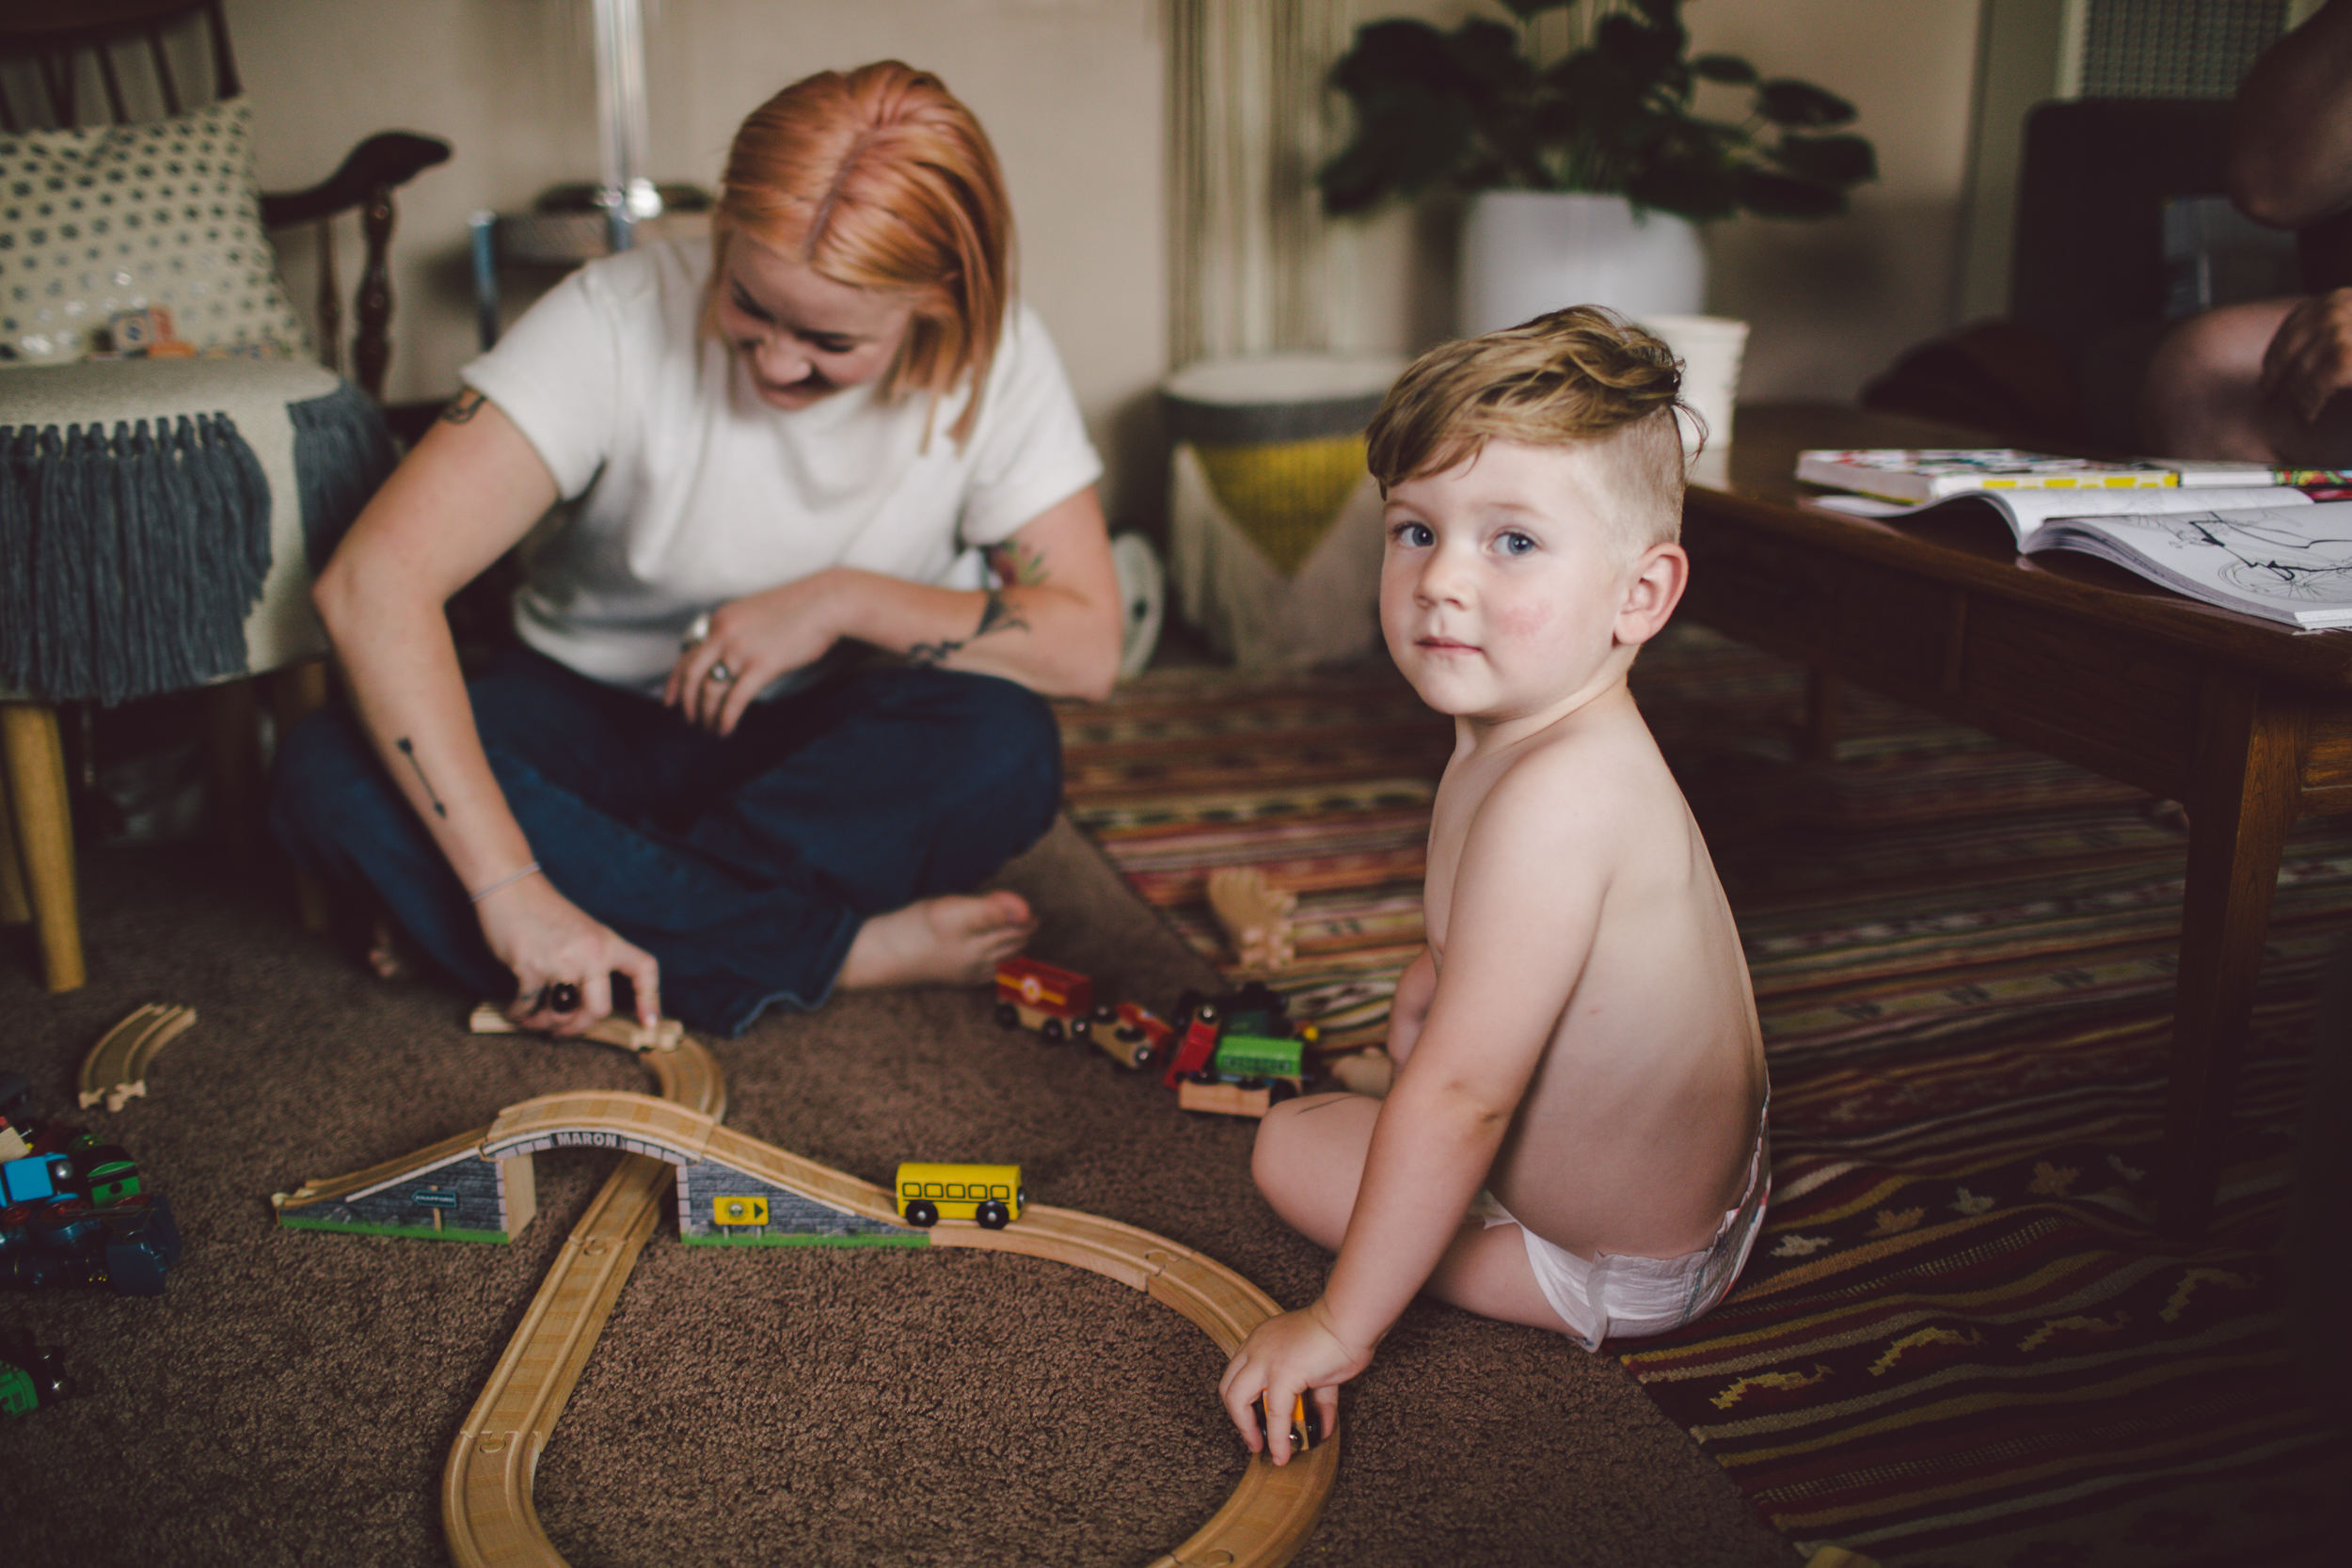 san diego-family-lifestyle-toddler-pink hair-motherhood-documentary-hipster